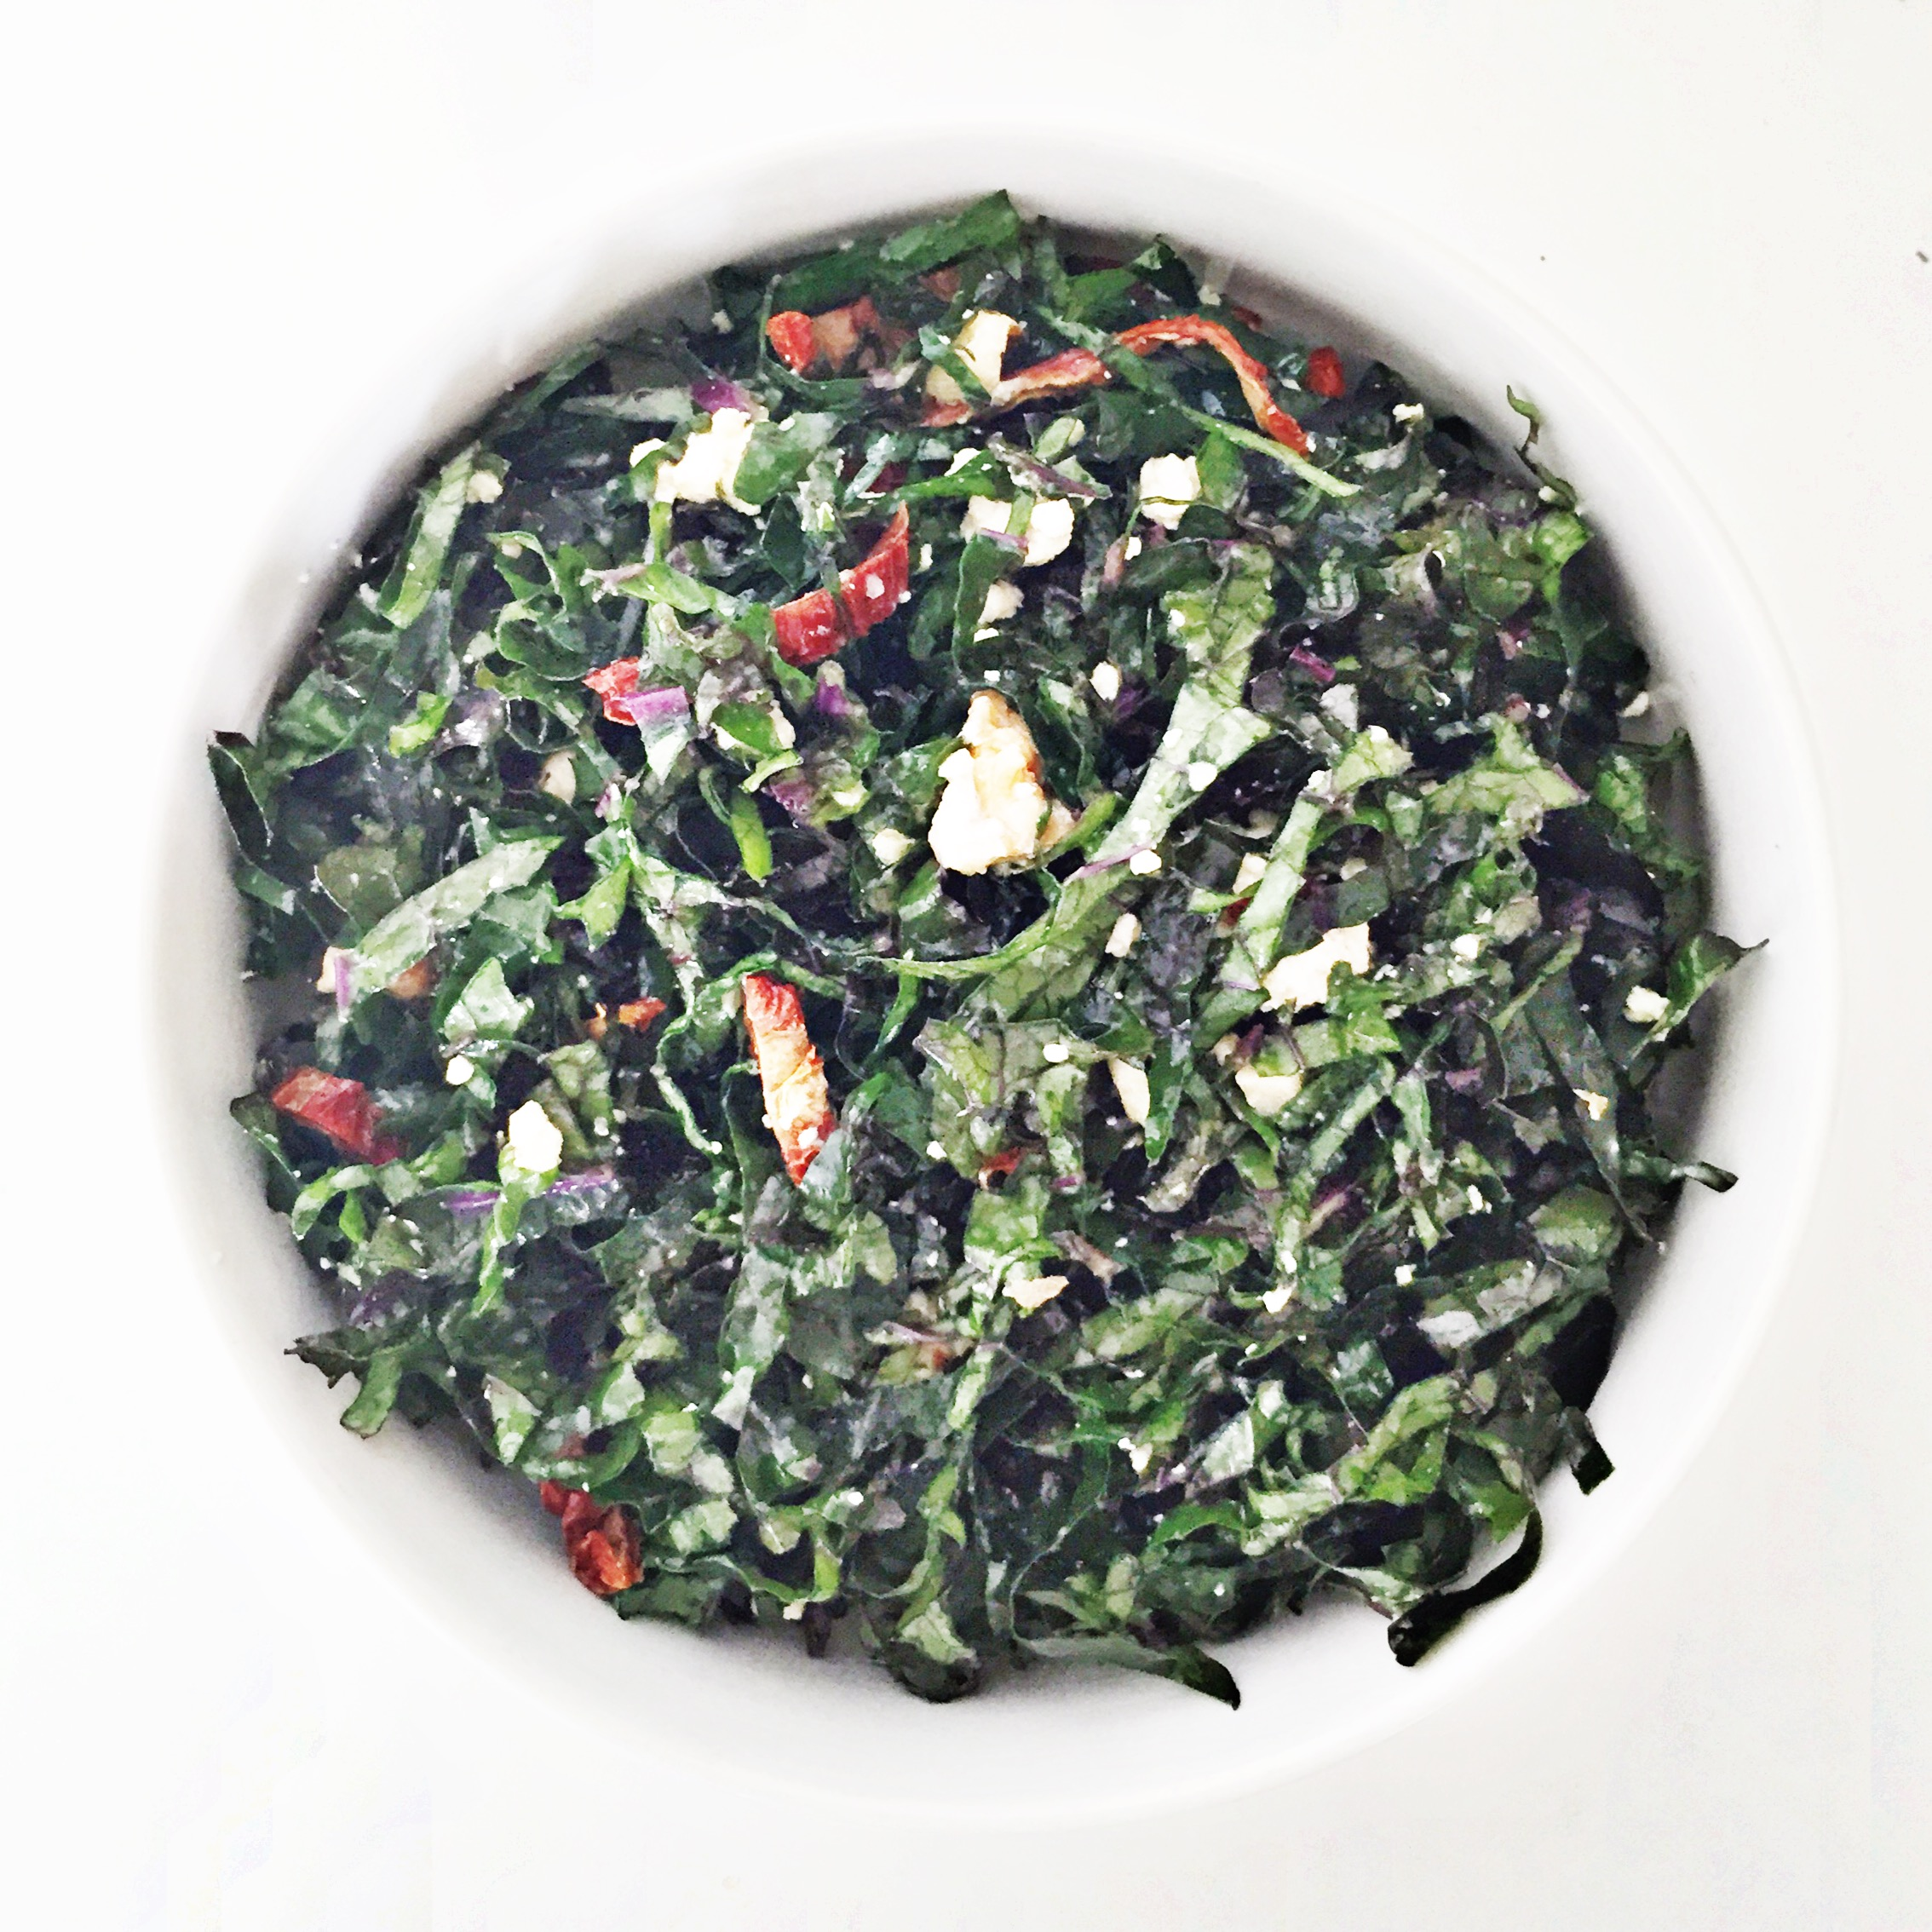 angelica's kale salad - Clean Food Dirty City